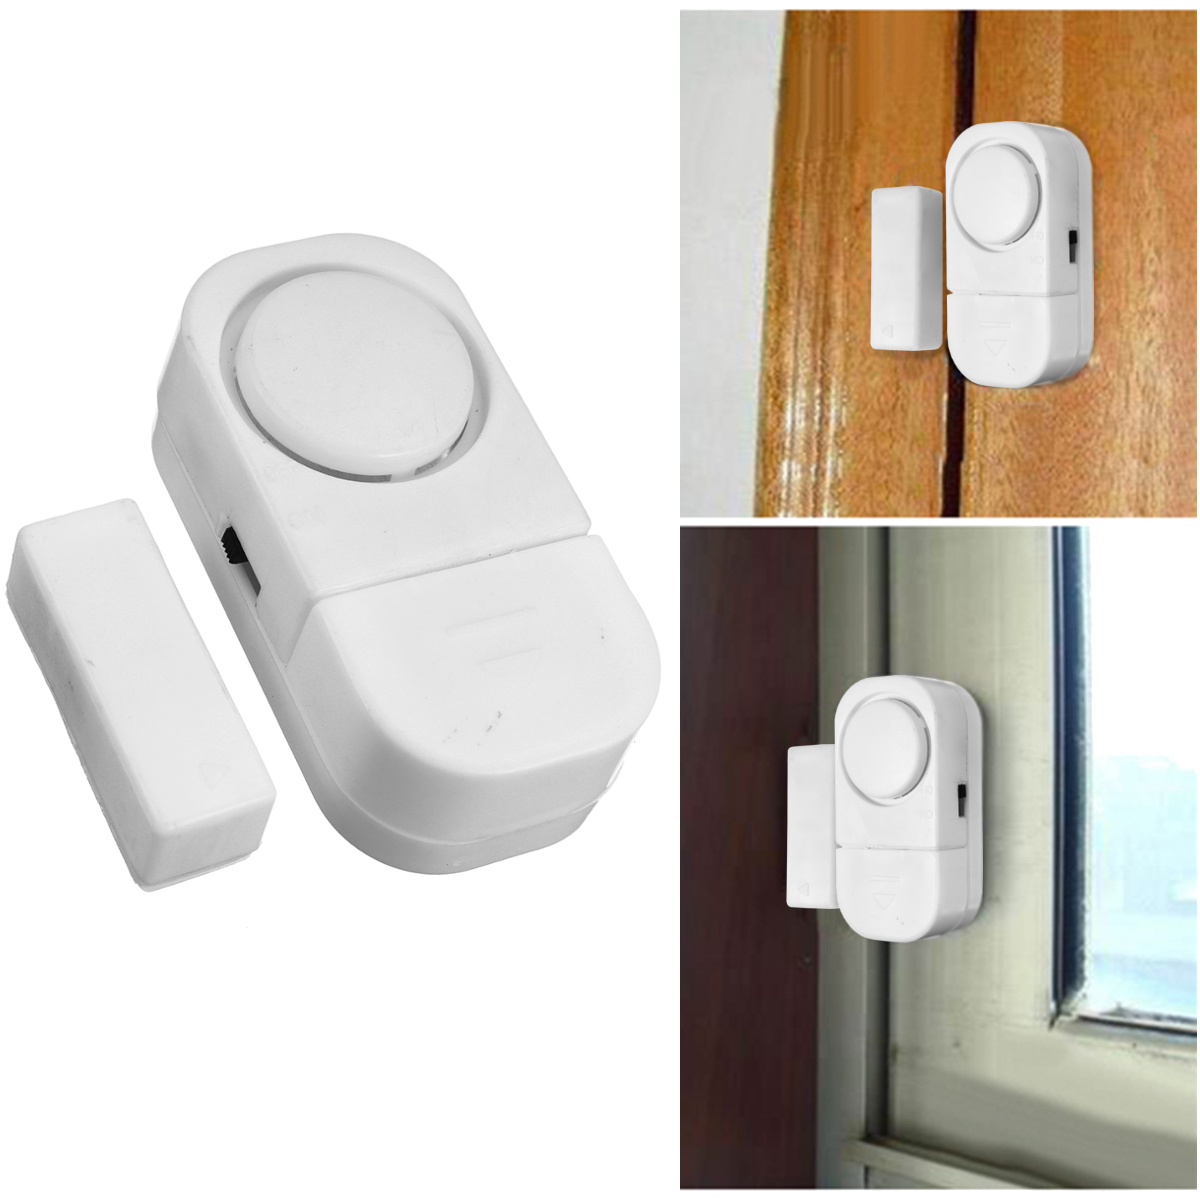 Magnetic Sensors Independent Wireless Home Window Door Entry Burglar Security Alarm System(China)